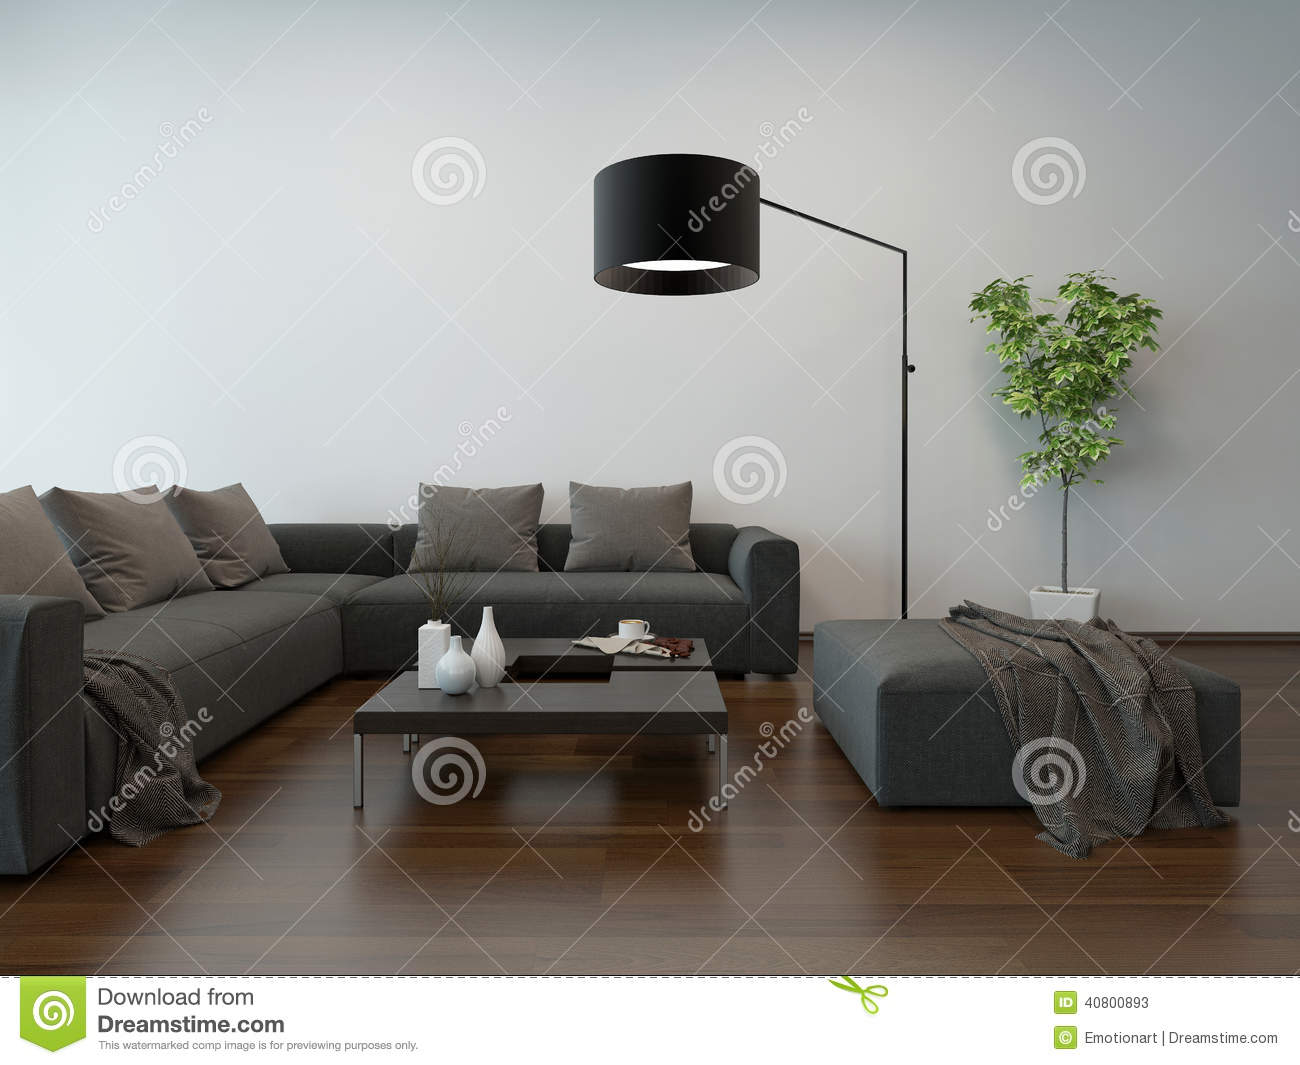 wohnzimmer innenw graue couch und stehlampe stock abbildung bild 40800893. Black Bedroom Furniture Sets. Home Design Ideas